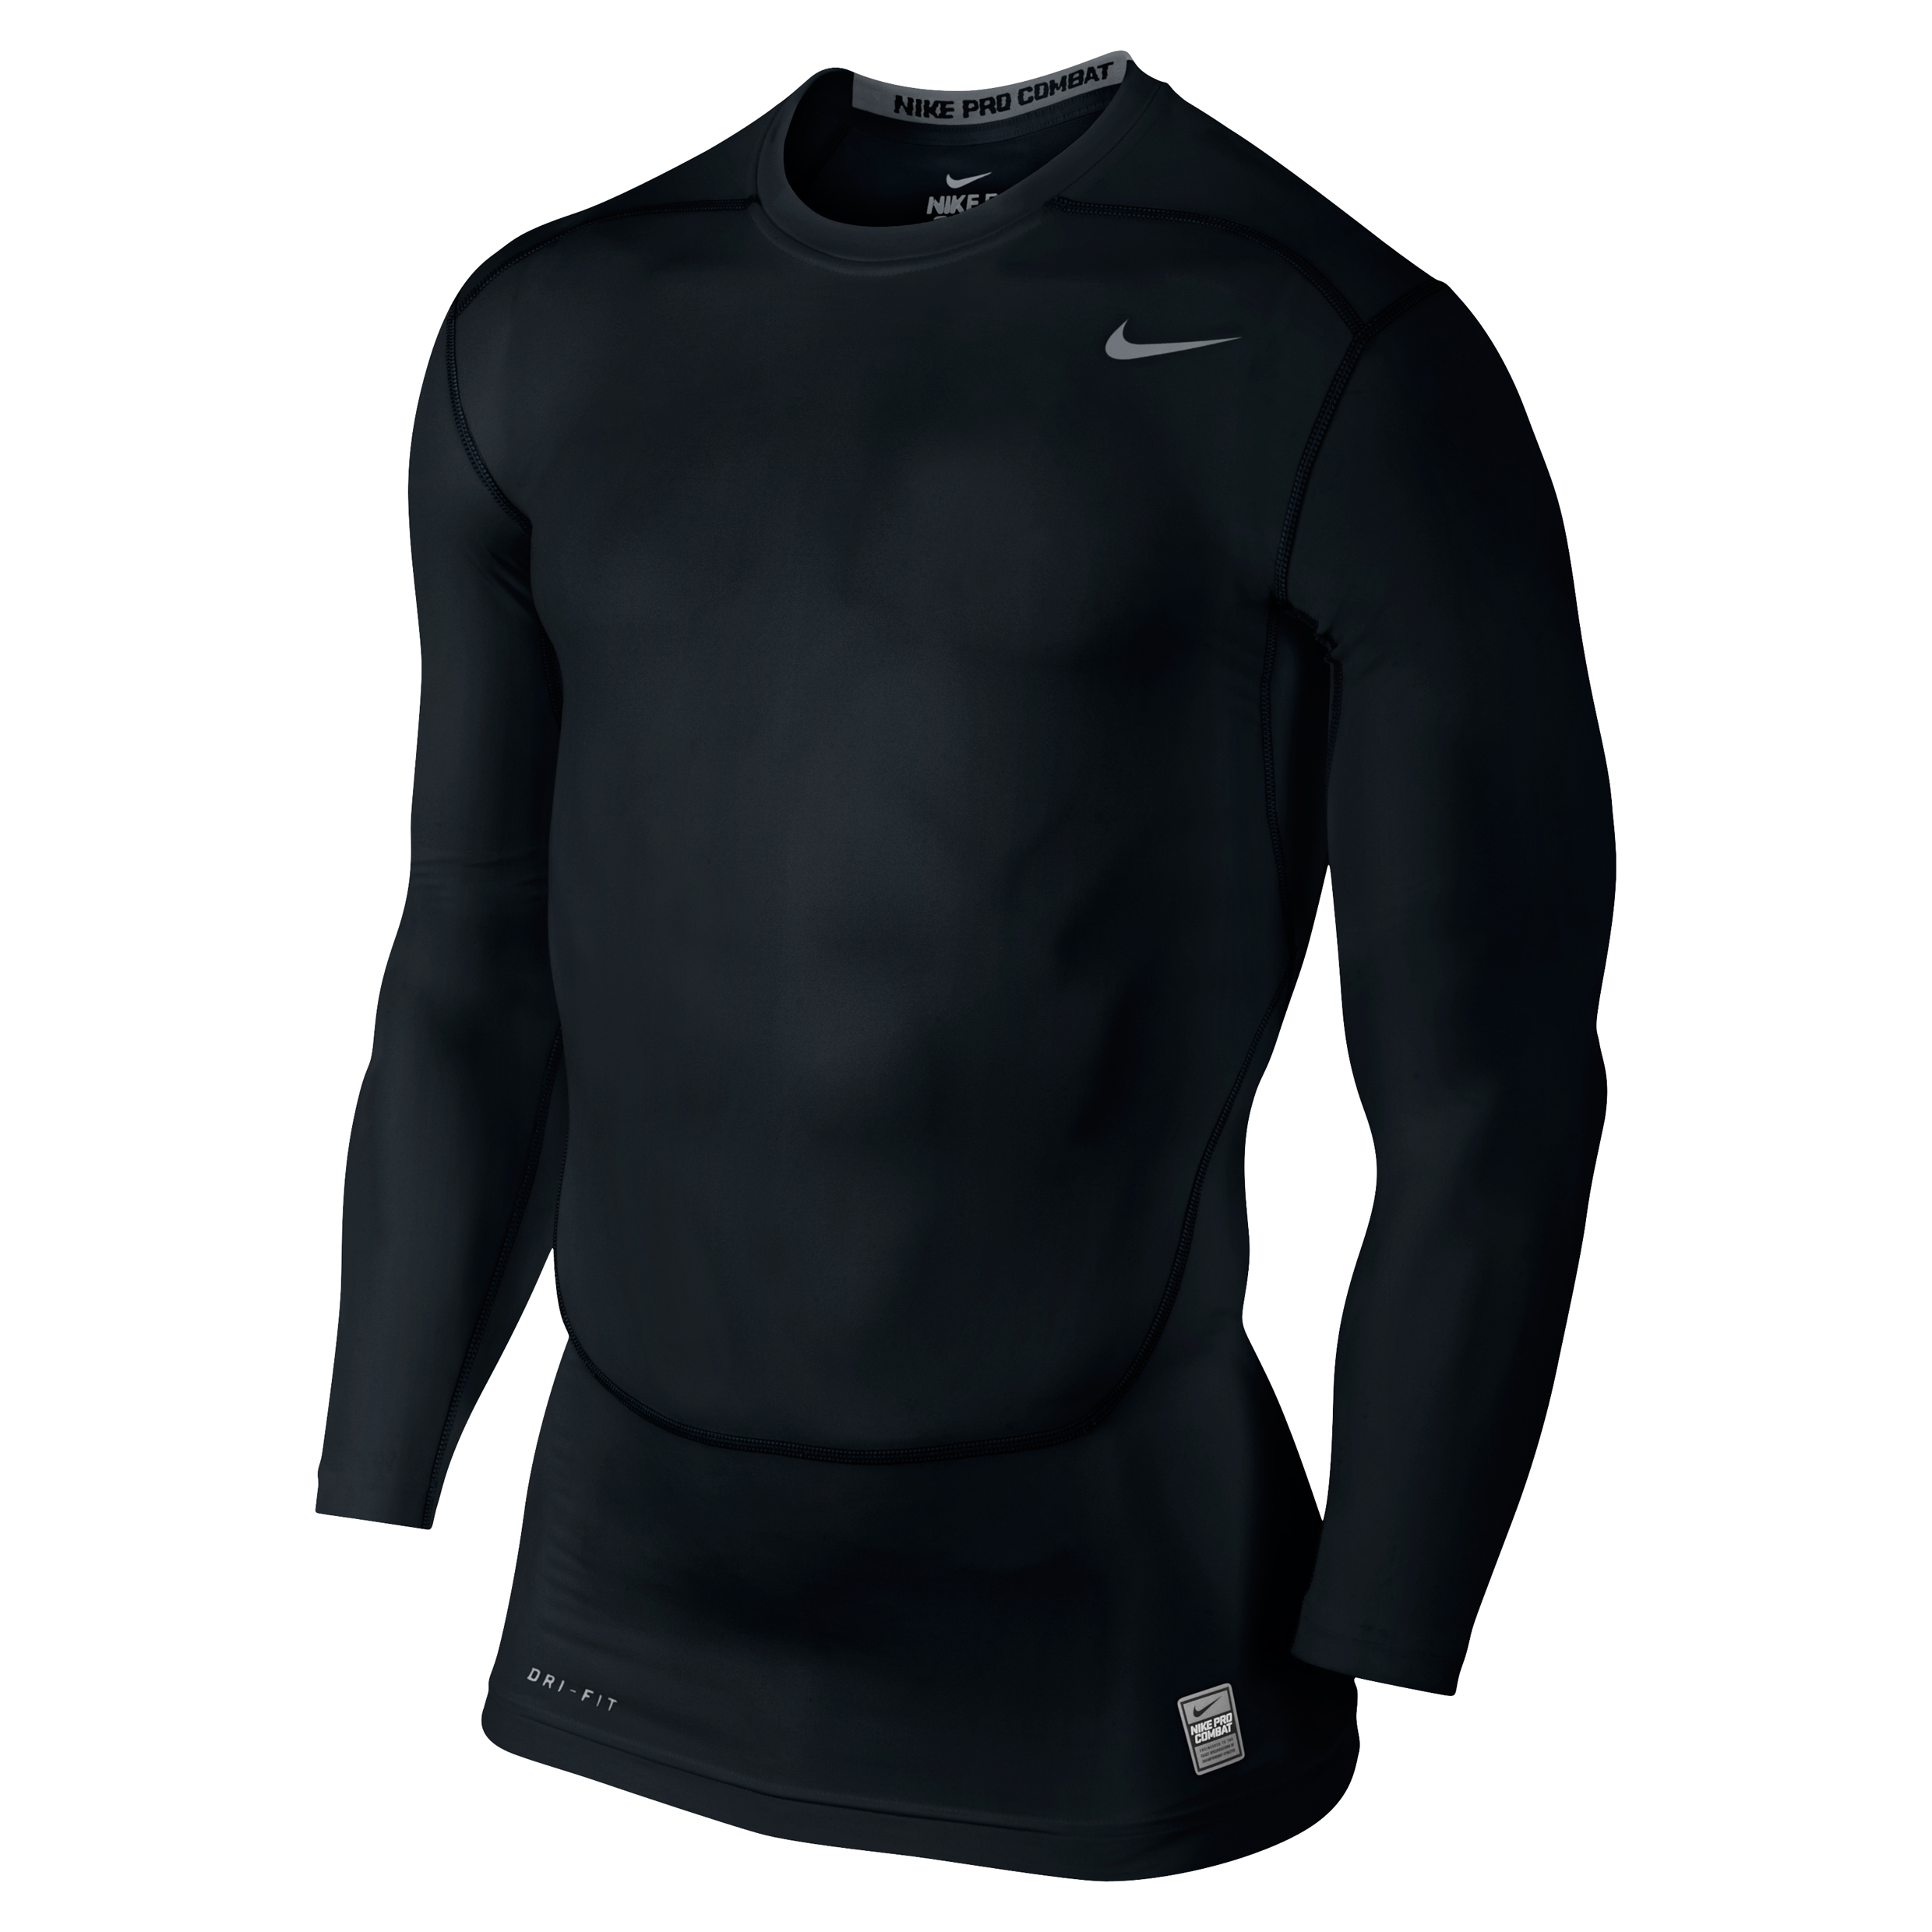 Nike Pro Combat Core Base Layer Top - Long Sleeve Black